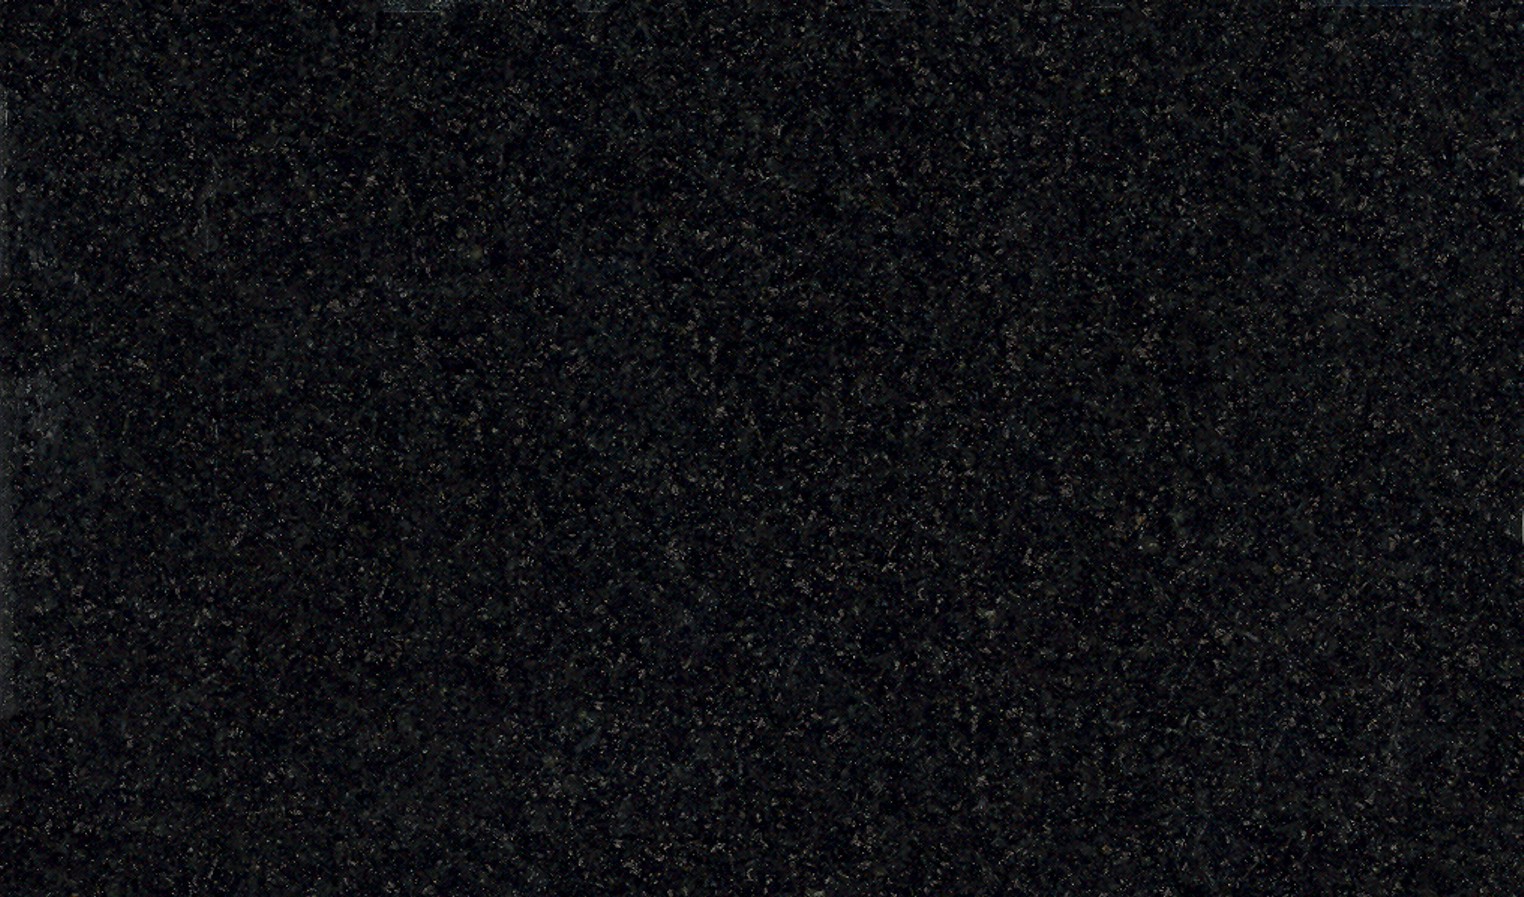 black granit texture, texture черного granite, download photo, background